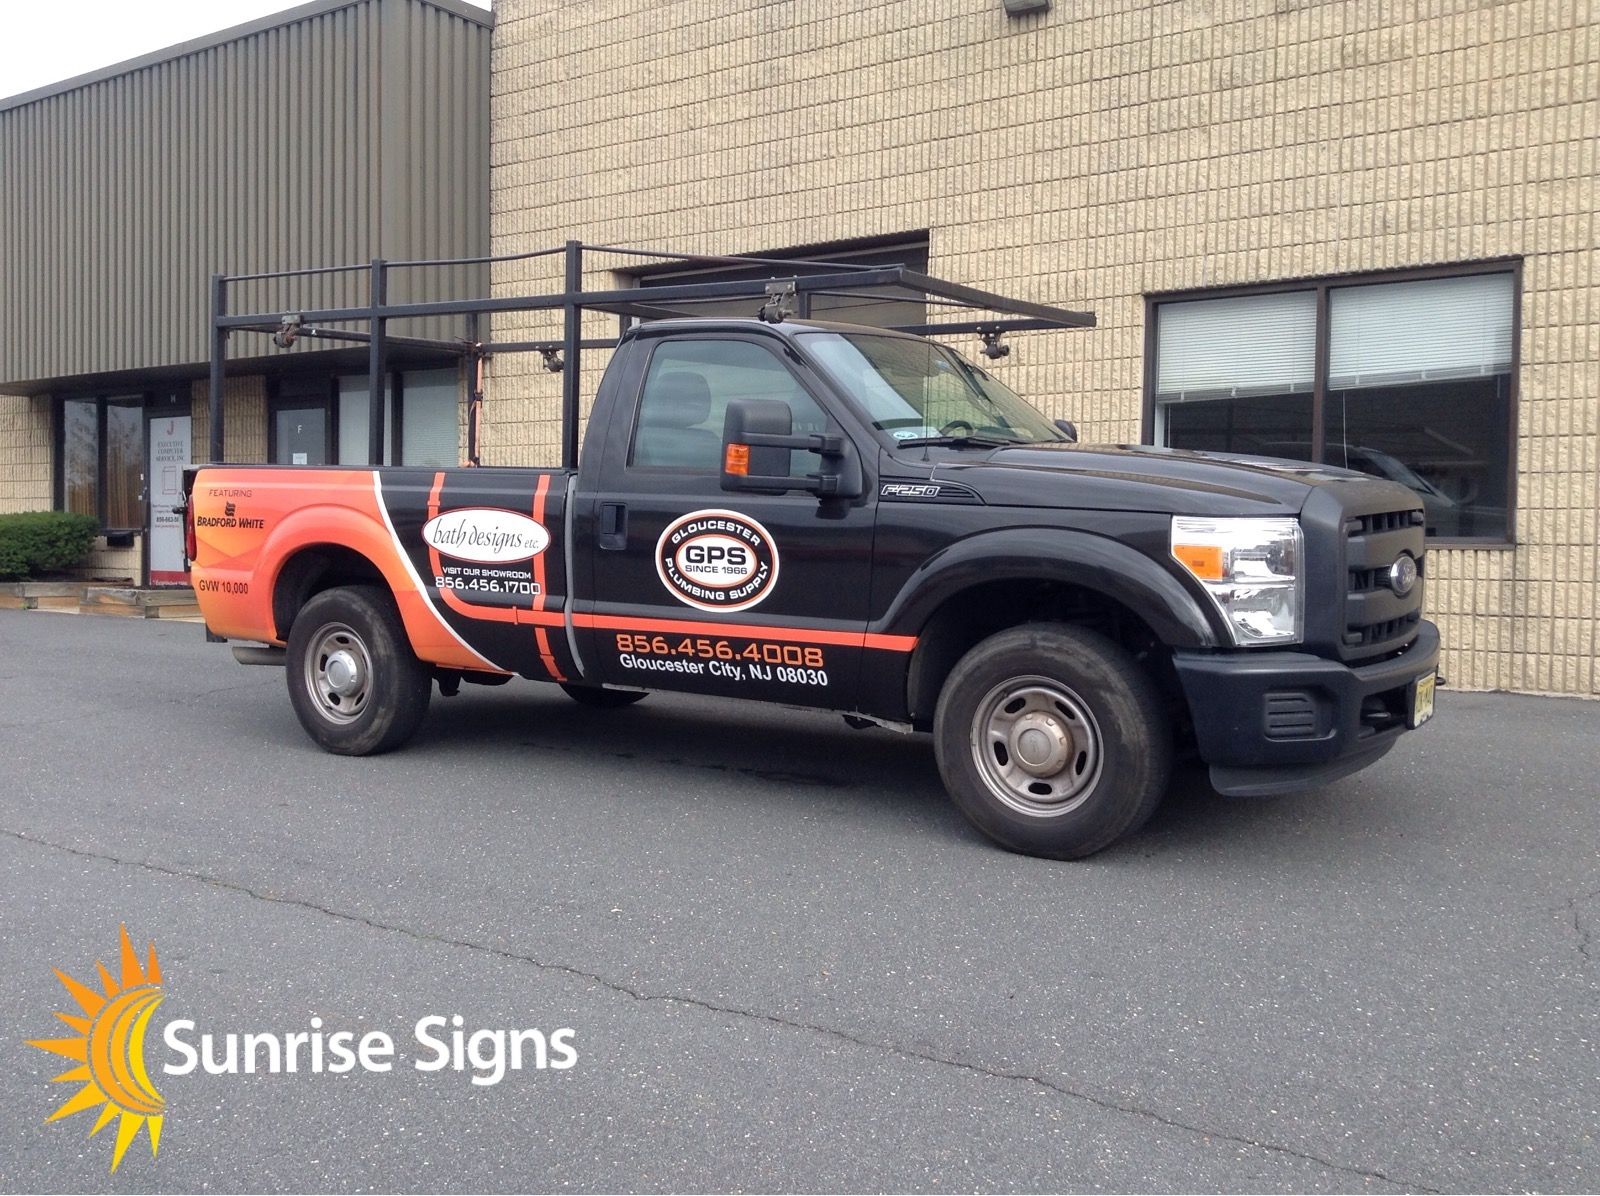 plumbing supply company truck wraps